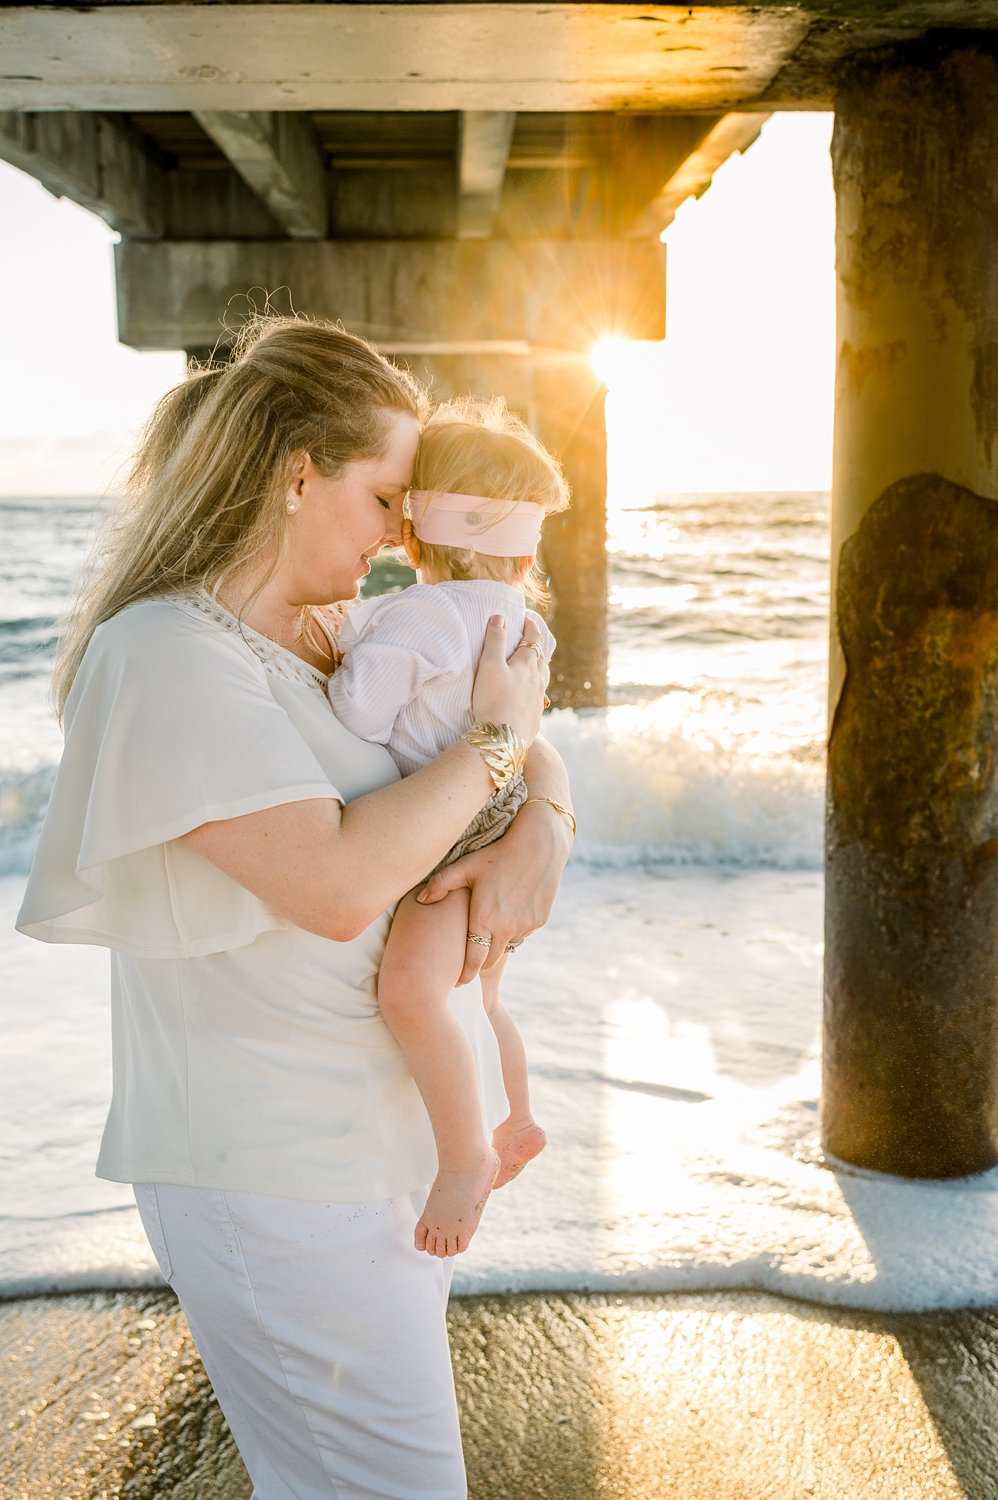 mother cradling daughter, pier photography, Saint Augustine Beach, Florida, Ryaphotos